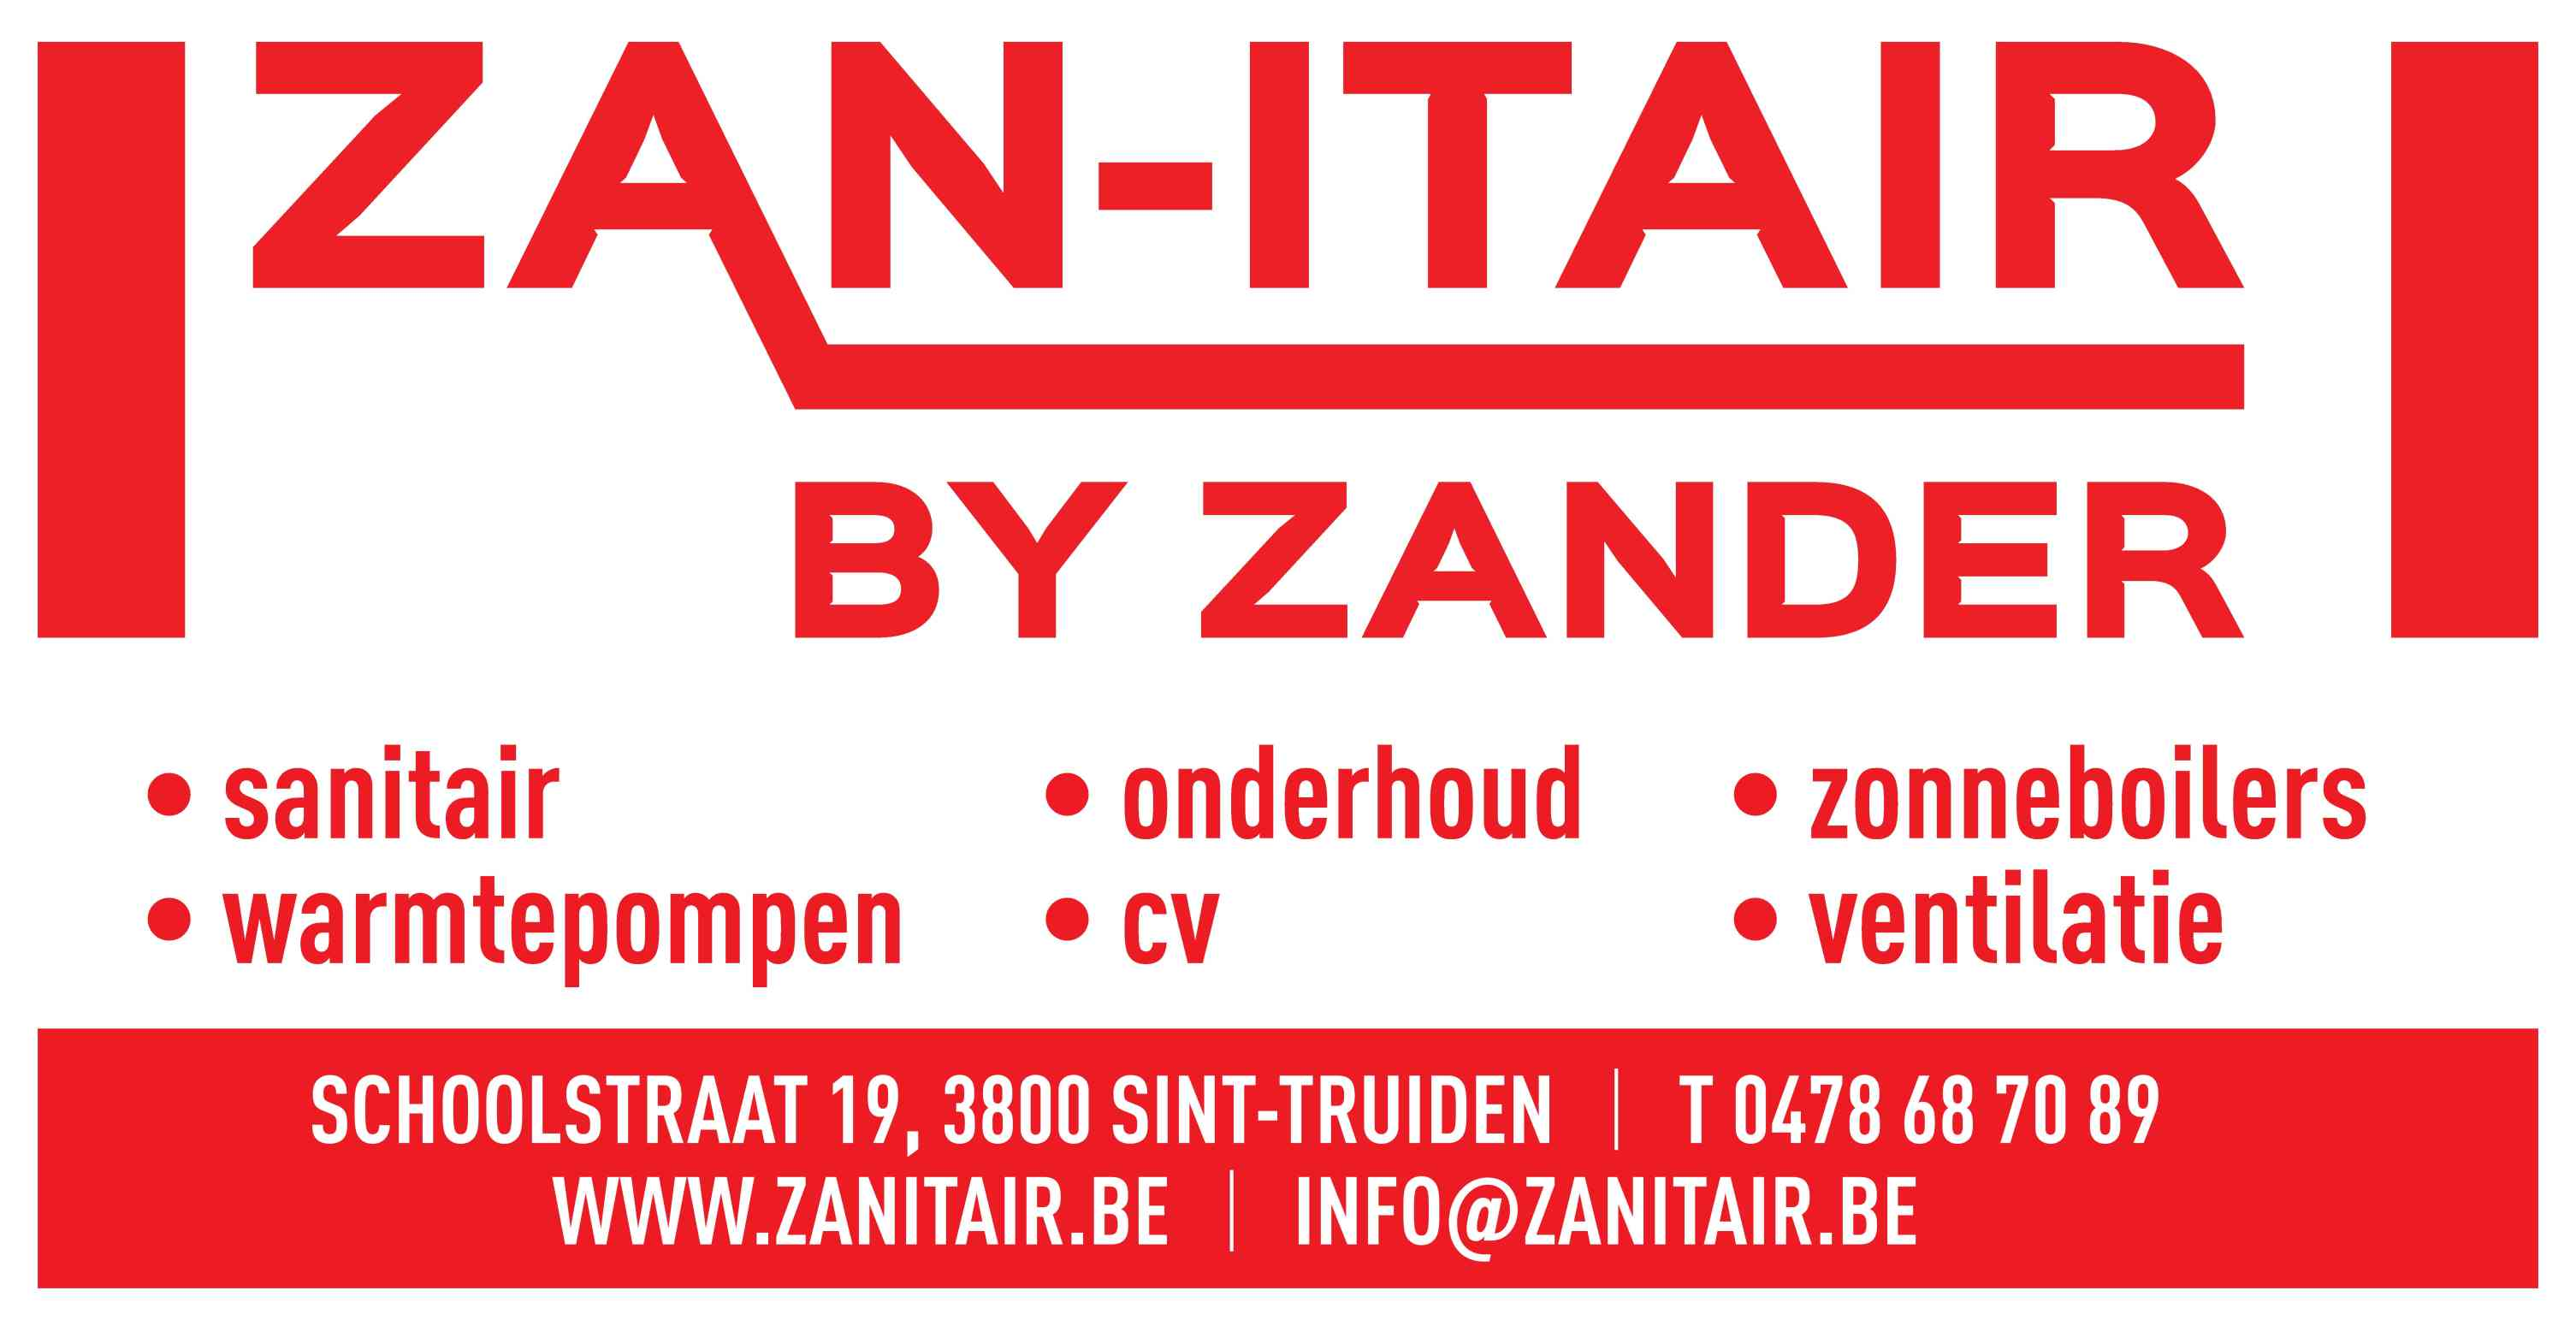 Zan-itair